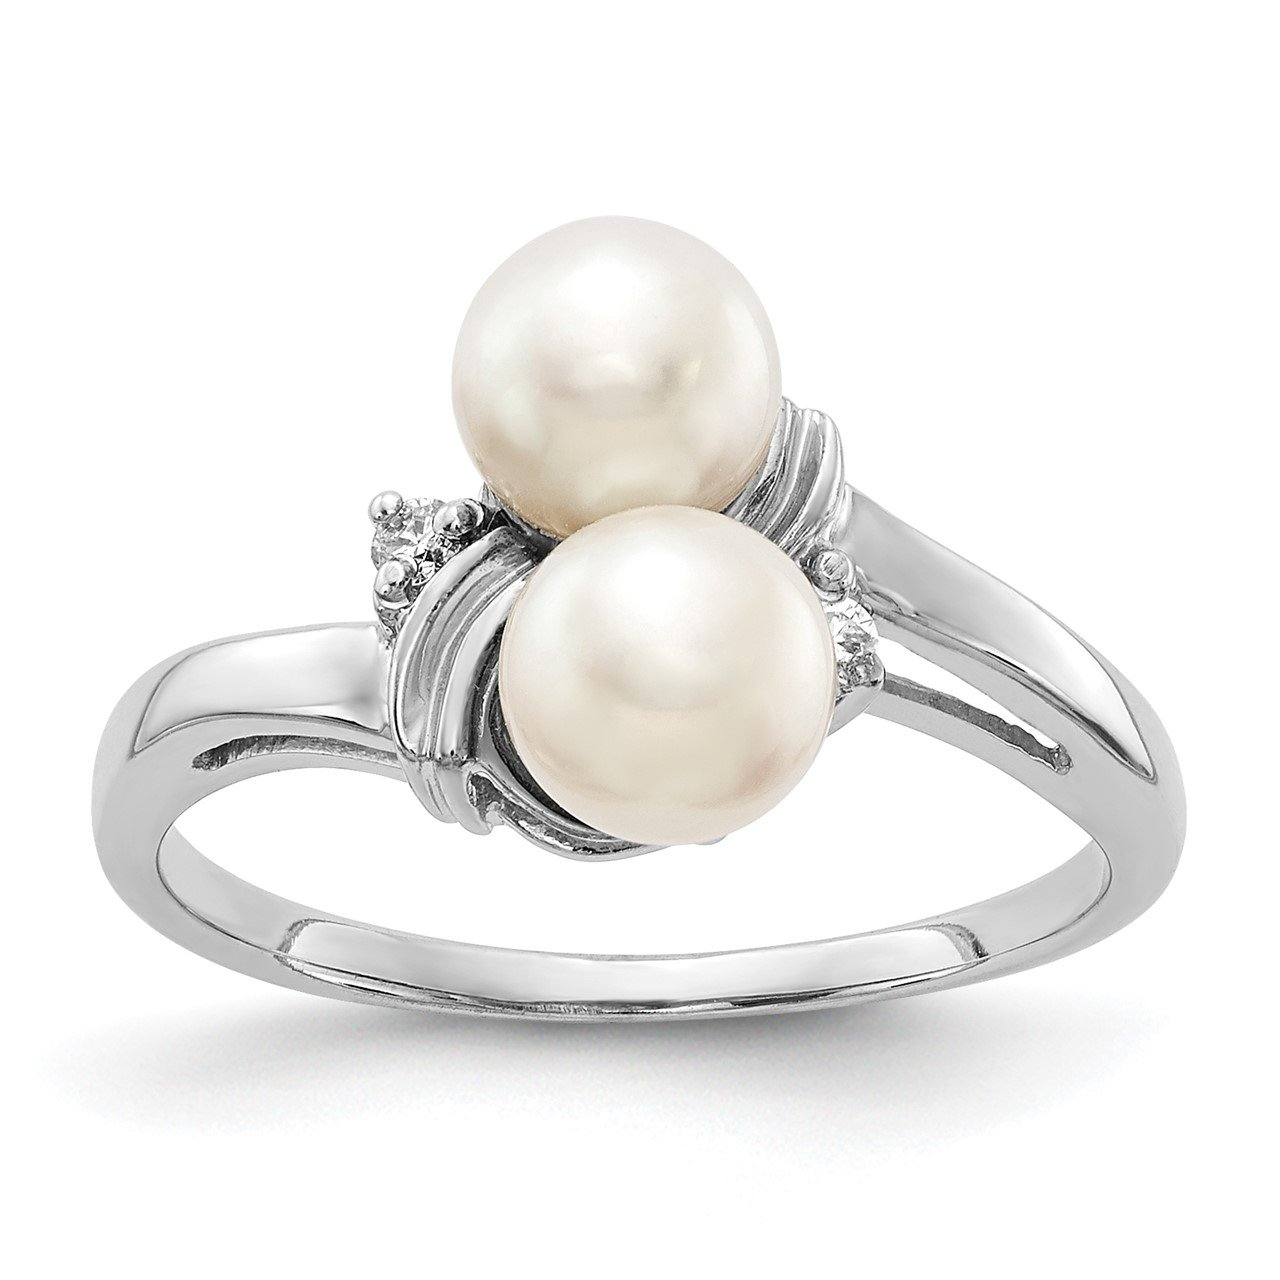 14k White Gold 5.5mm FW Cultured Pearl AAA Diamond ring